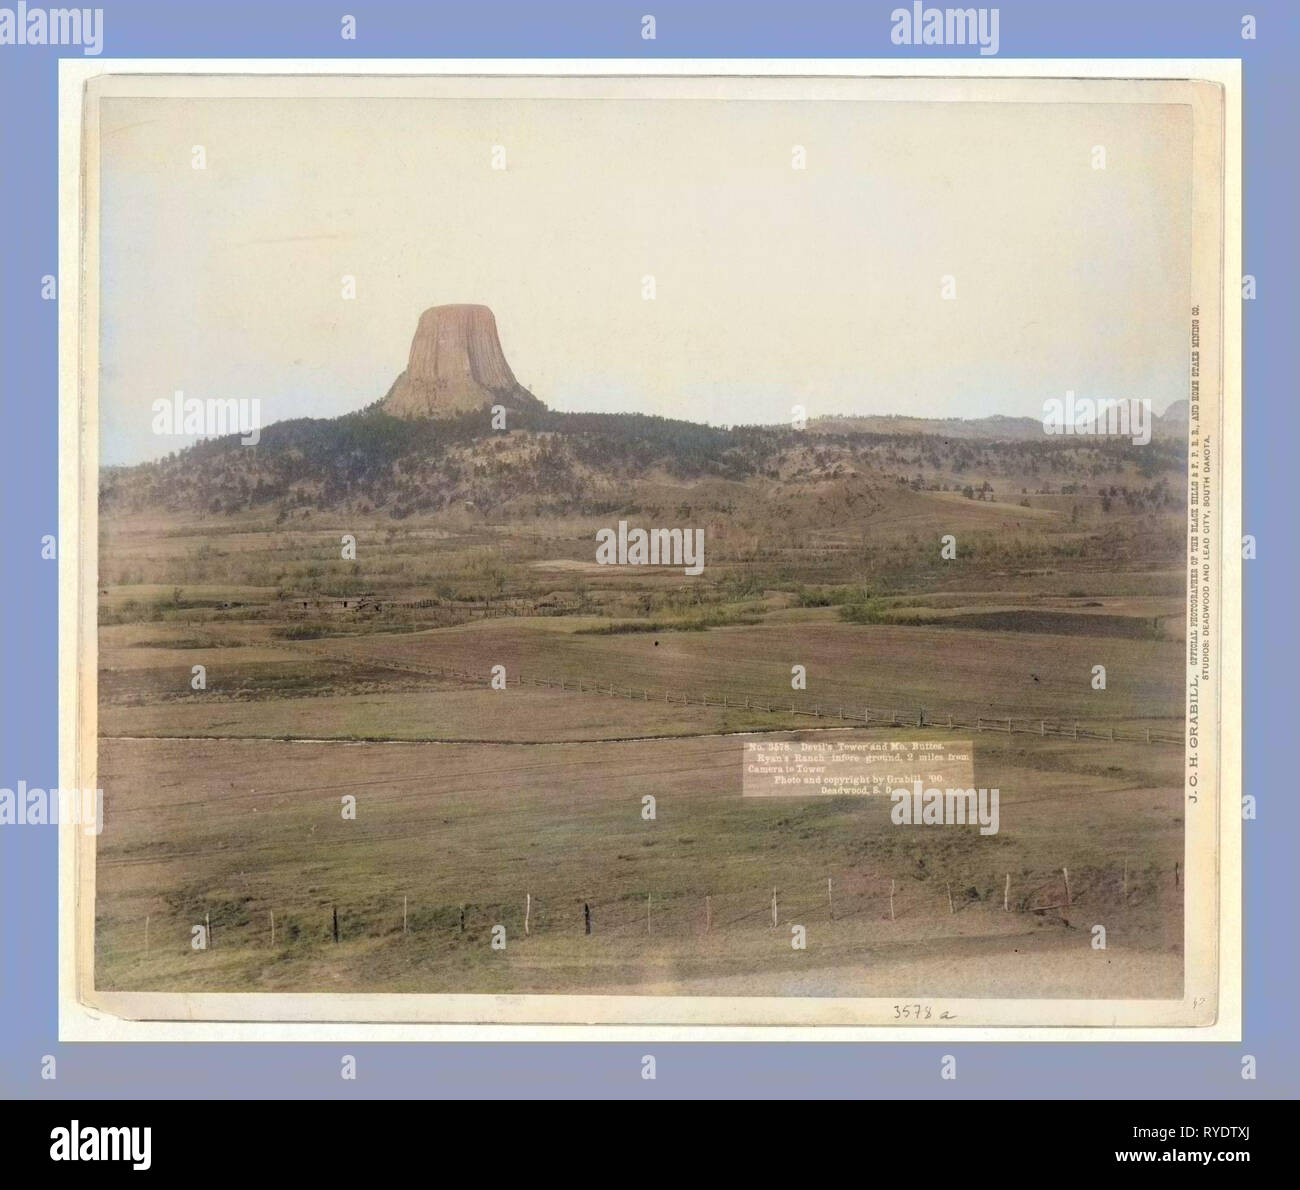 Devil's Tower and Mo. Buttes. Ryan's Ranch in Foreground, 2 Miles from Camera to Tower - Stock Image